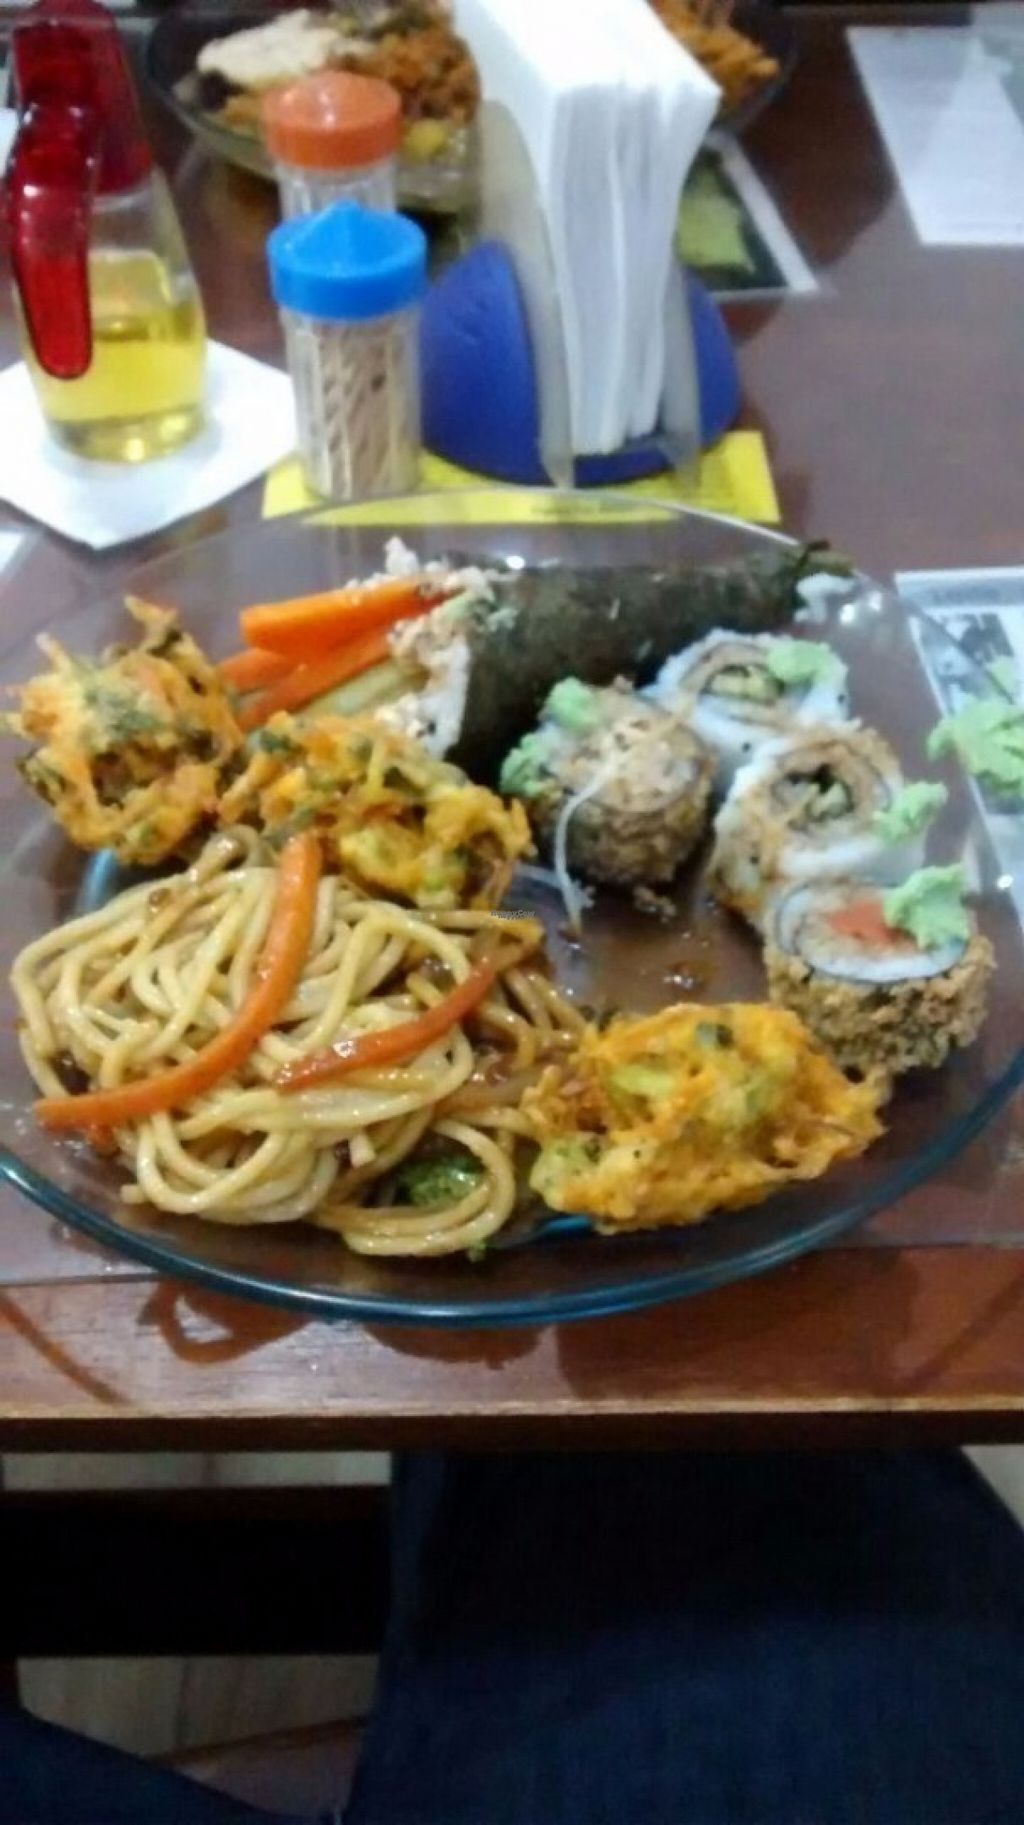 "Photo of Lar Vegetariano Vegan  by <a href=""/members/profile/Sylvane"">Sylvane</a> <br/>my dish <br/> August 13, 2016  - <a href='/contact/abuse/image/44899/168181'>Report</a>"